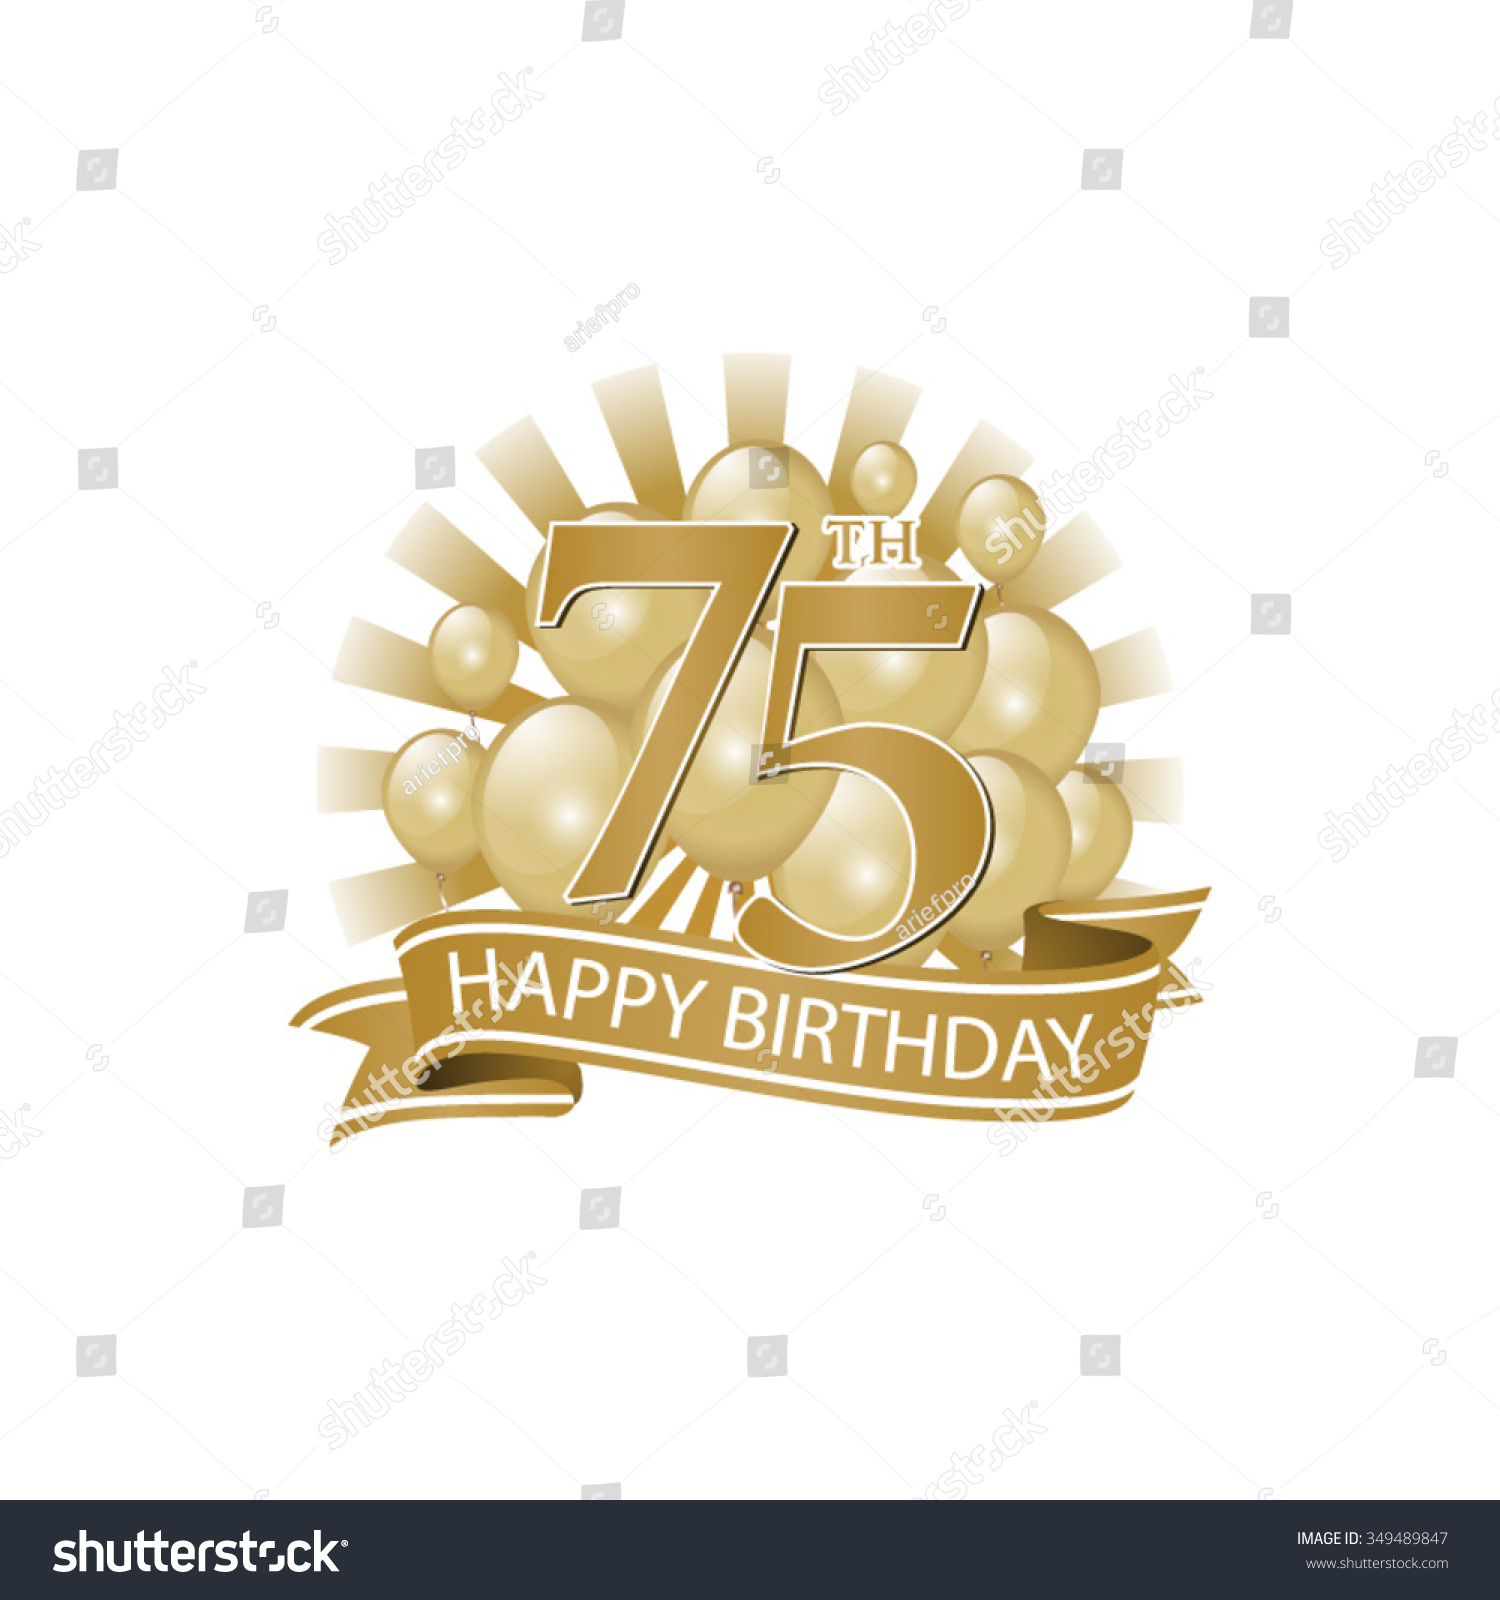 75th Golden Happy Birthday Logo With Balloons And Burst Of Light